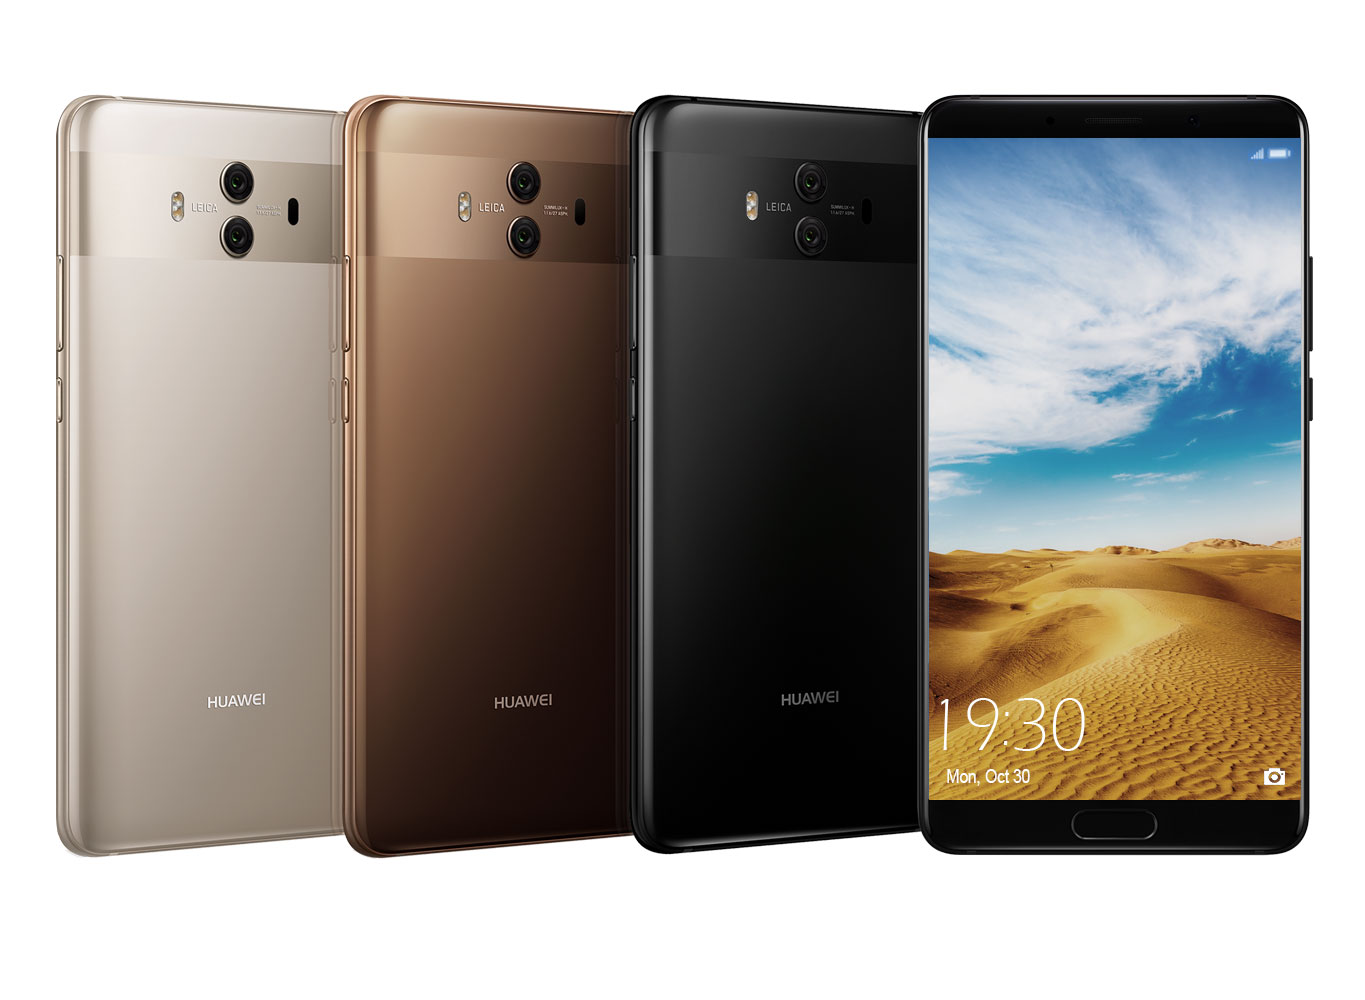 Specification of Huawei Mate 10